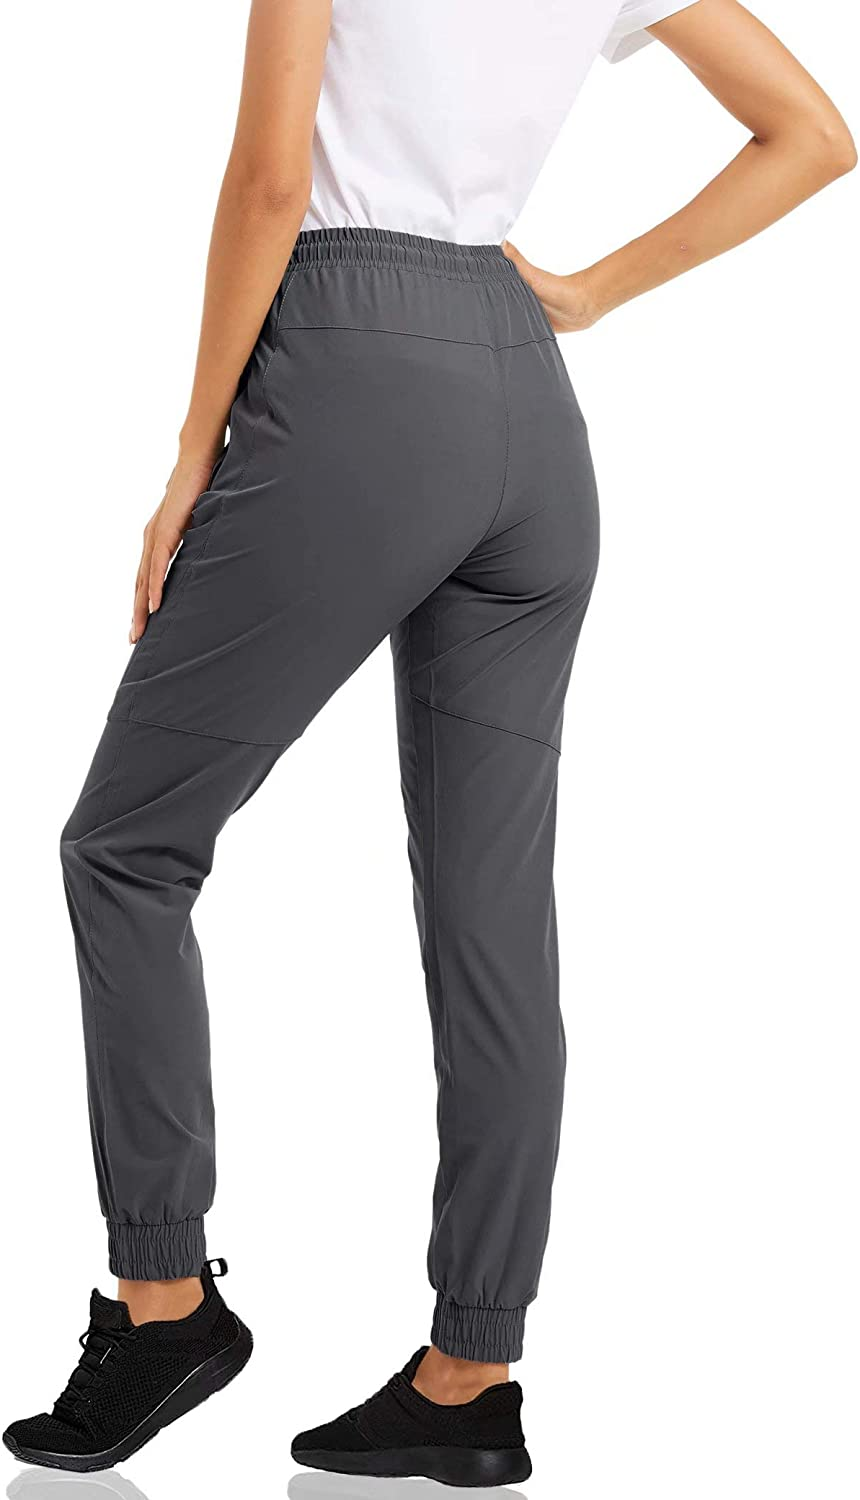 Running MAGCOMSEN Womens Quick Dry Jogger Hiking Pants with Zipper Pockets Closed Bottom Sweatpants for Workout Gym